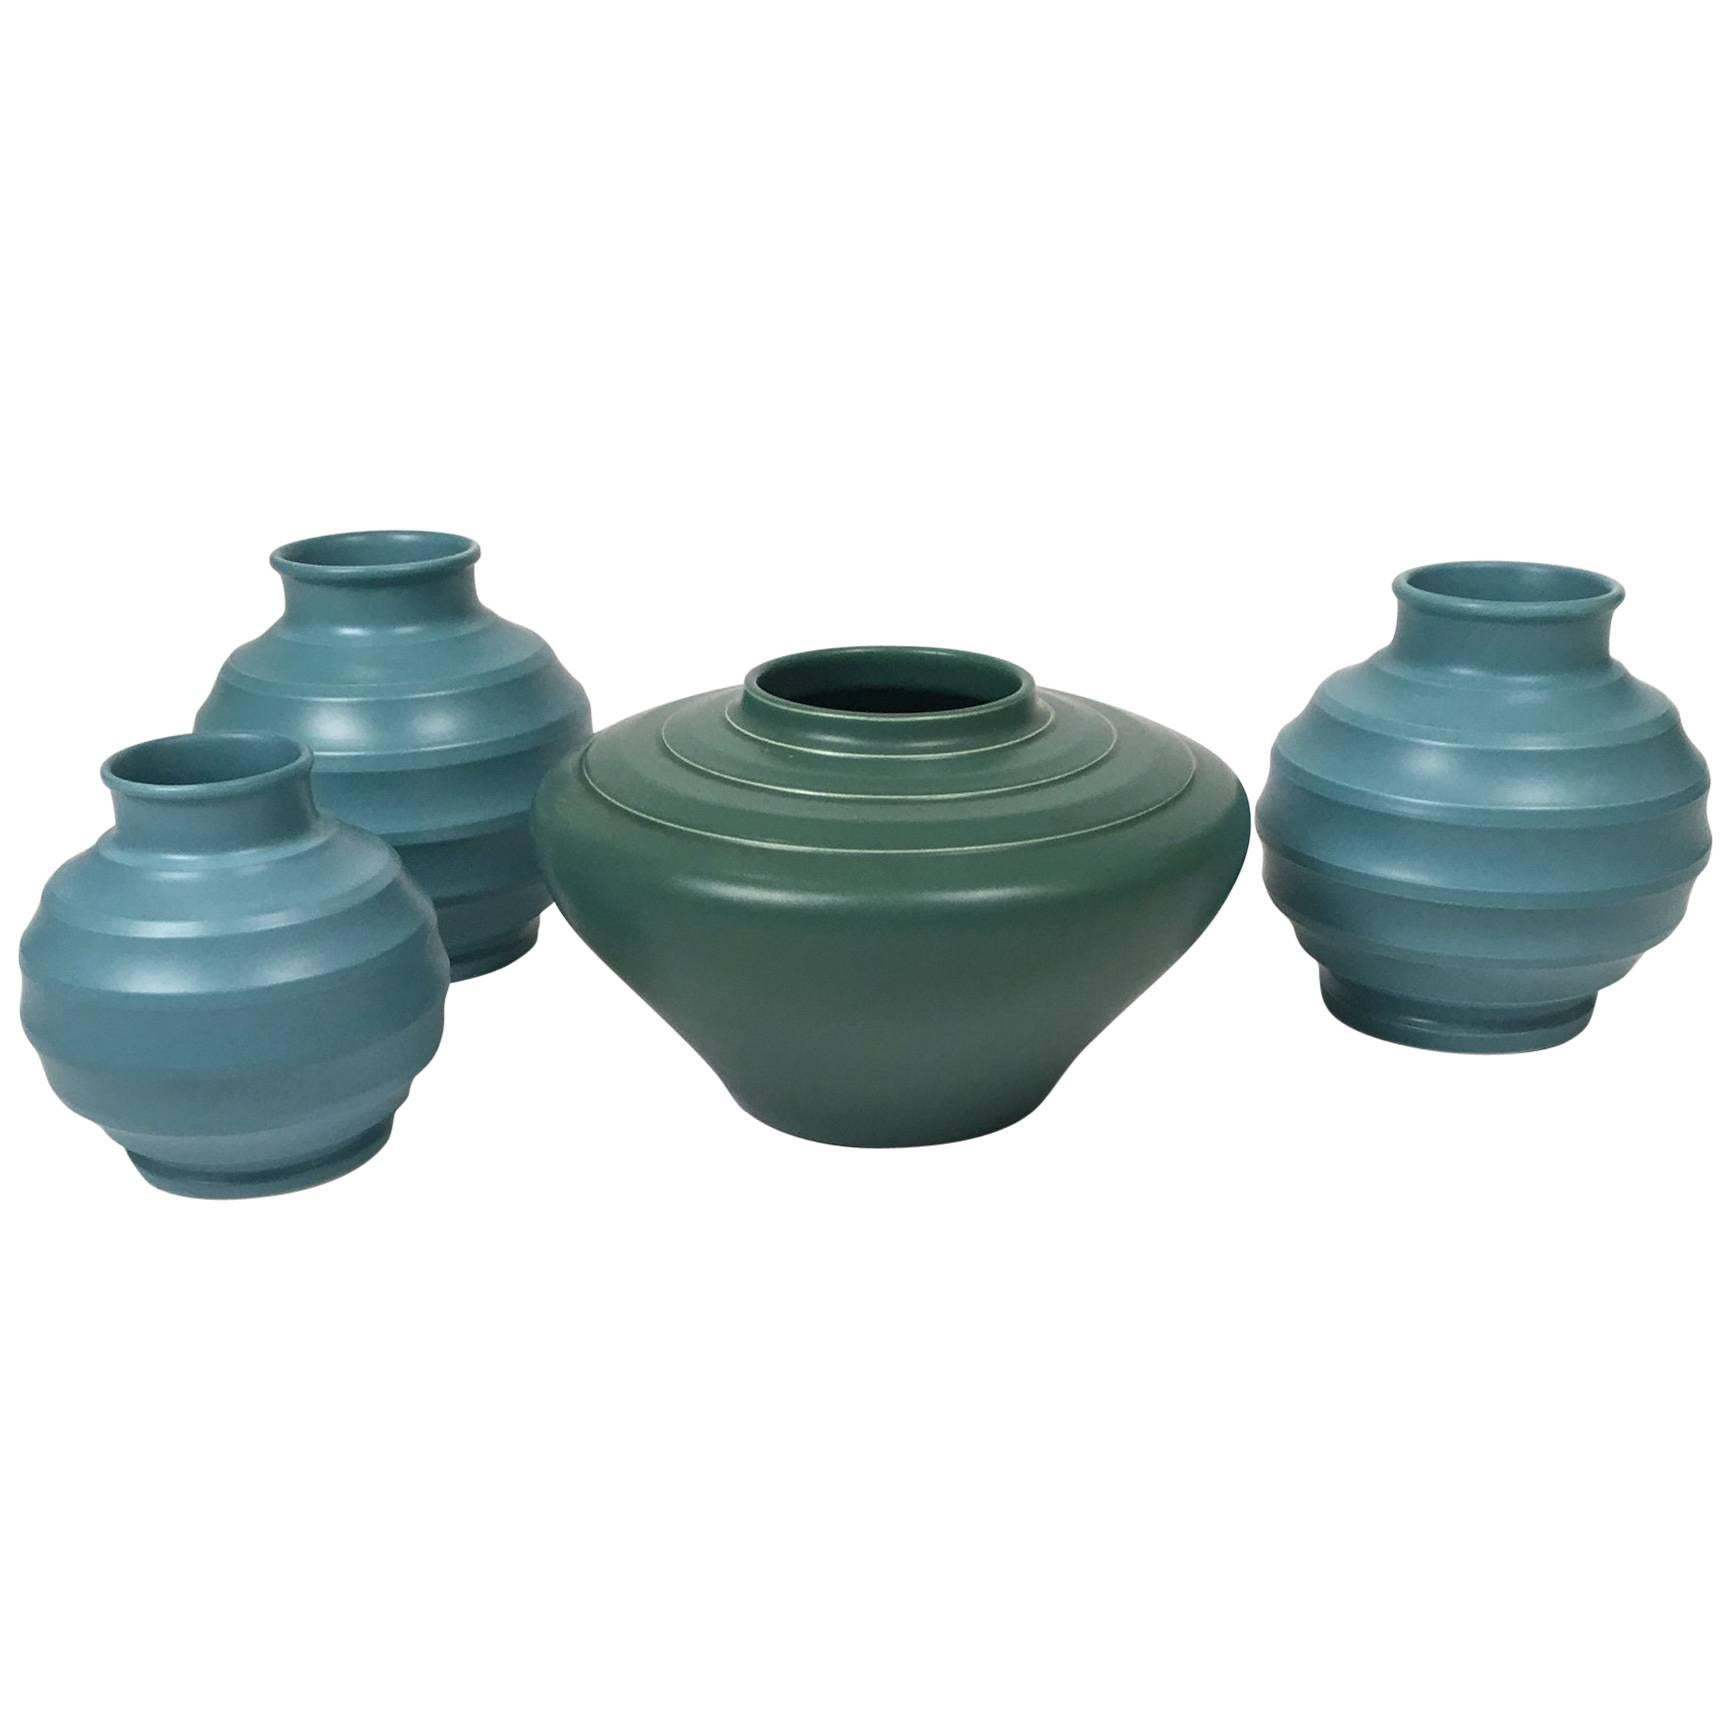 Four Colorful Examples of Keith Murray's Pottery, circa 1930